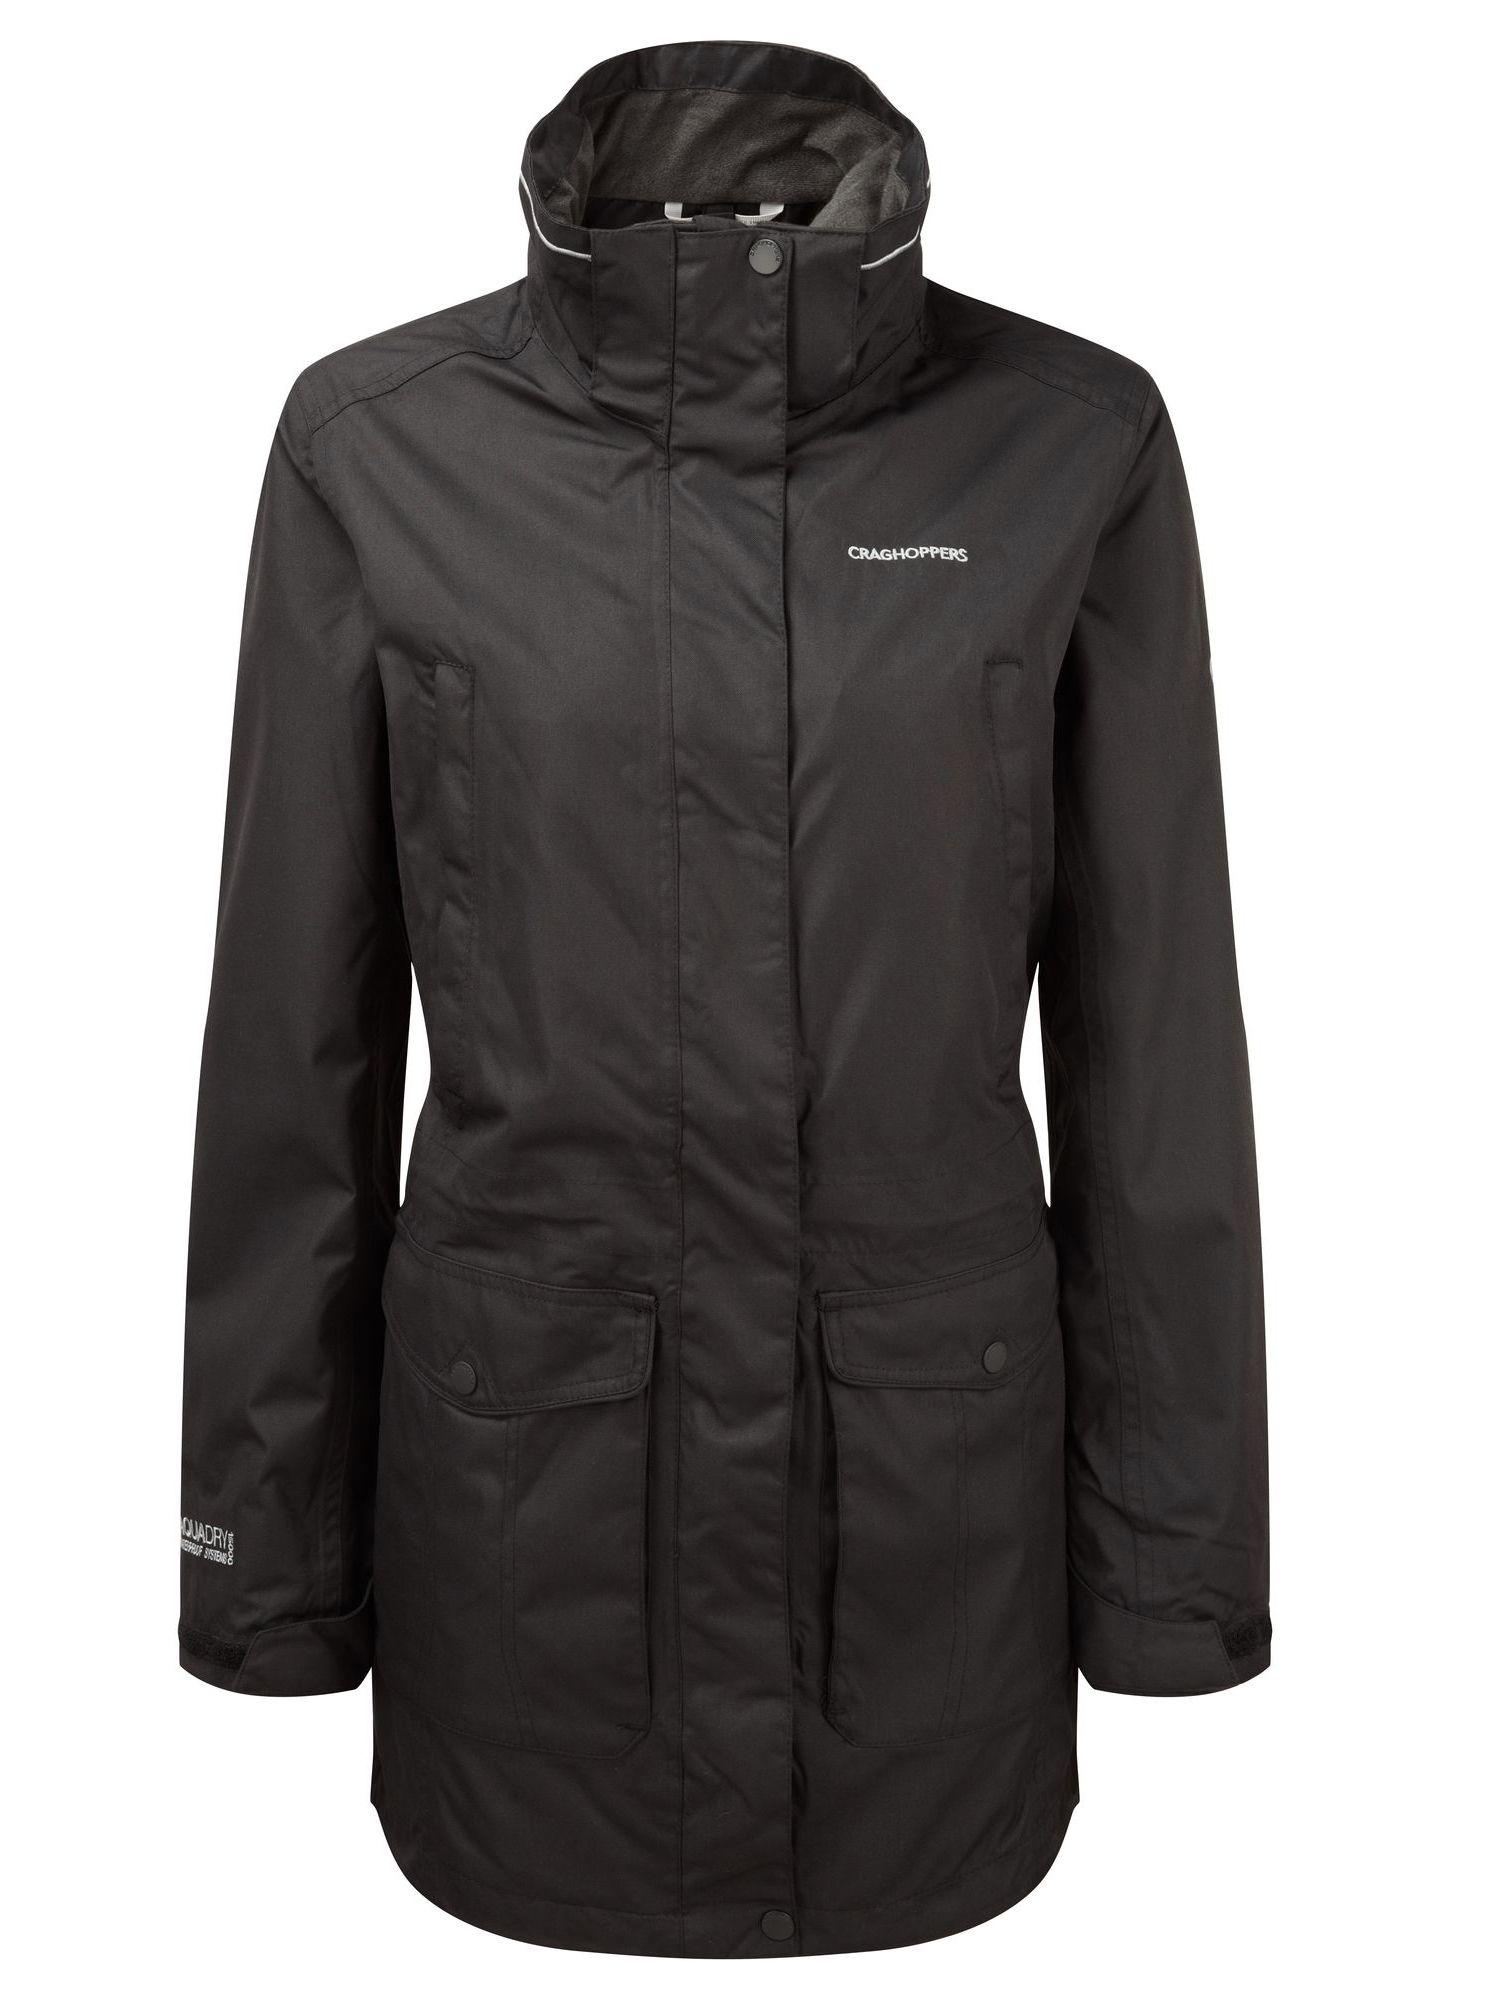 Craghoppers Madigan III Long Waterproof Jacket, Black